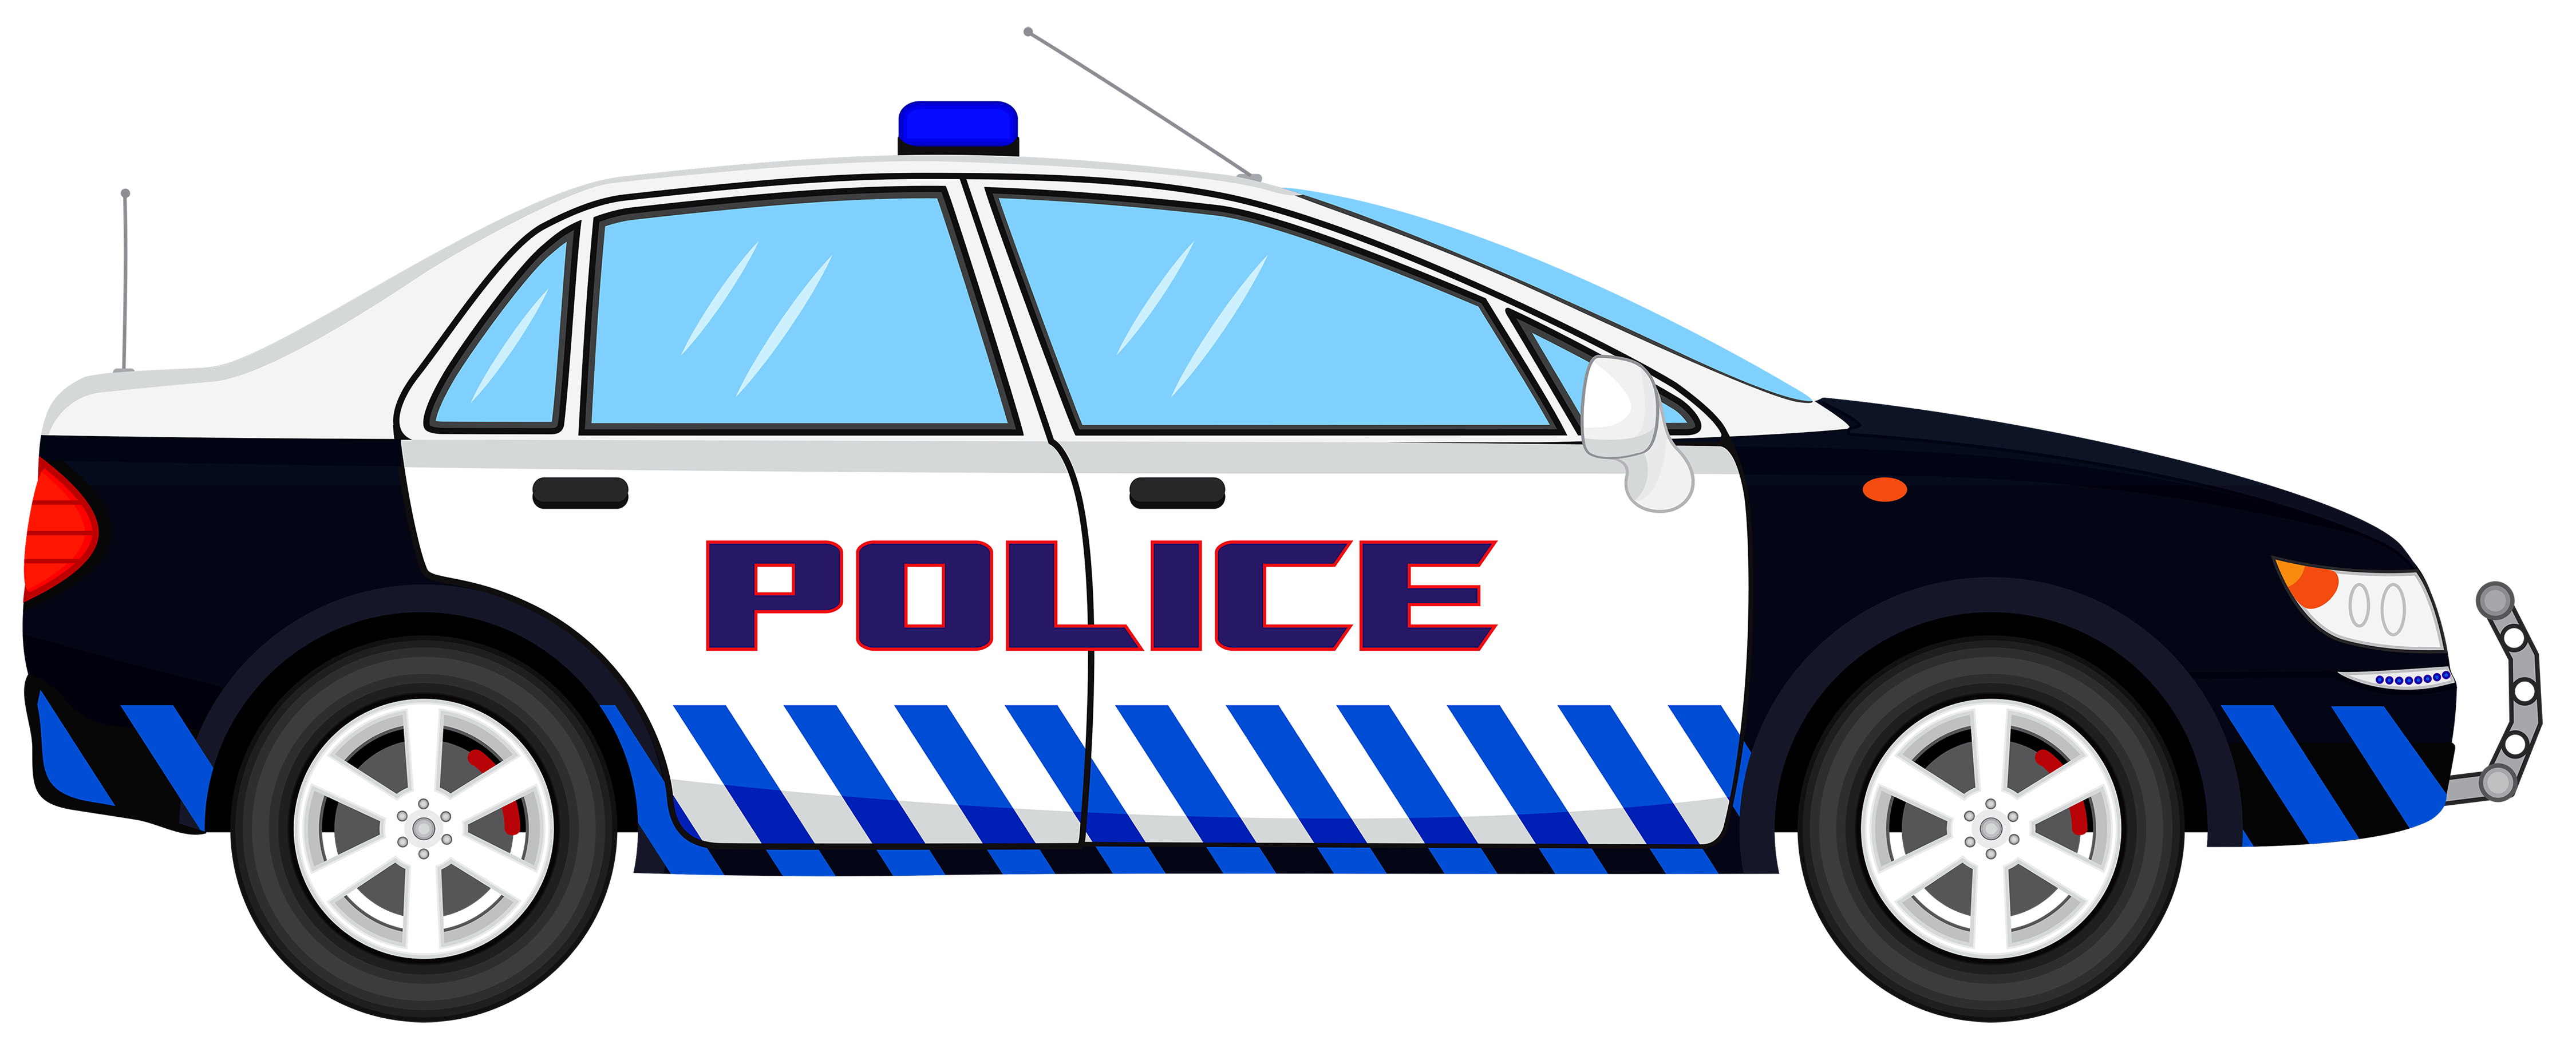 Nys police car clipart png library library Free police car graphic black and white stock png files ... png library library